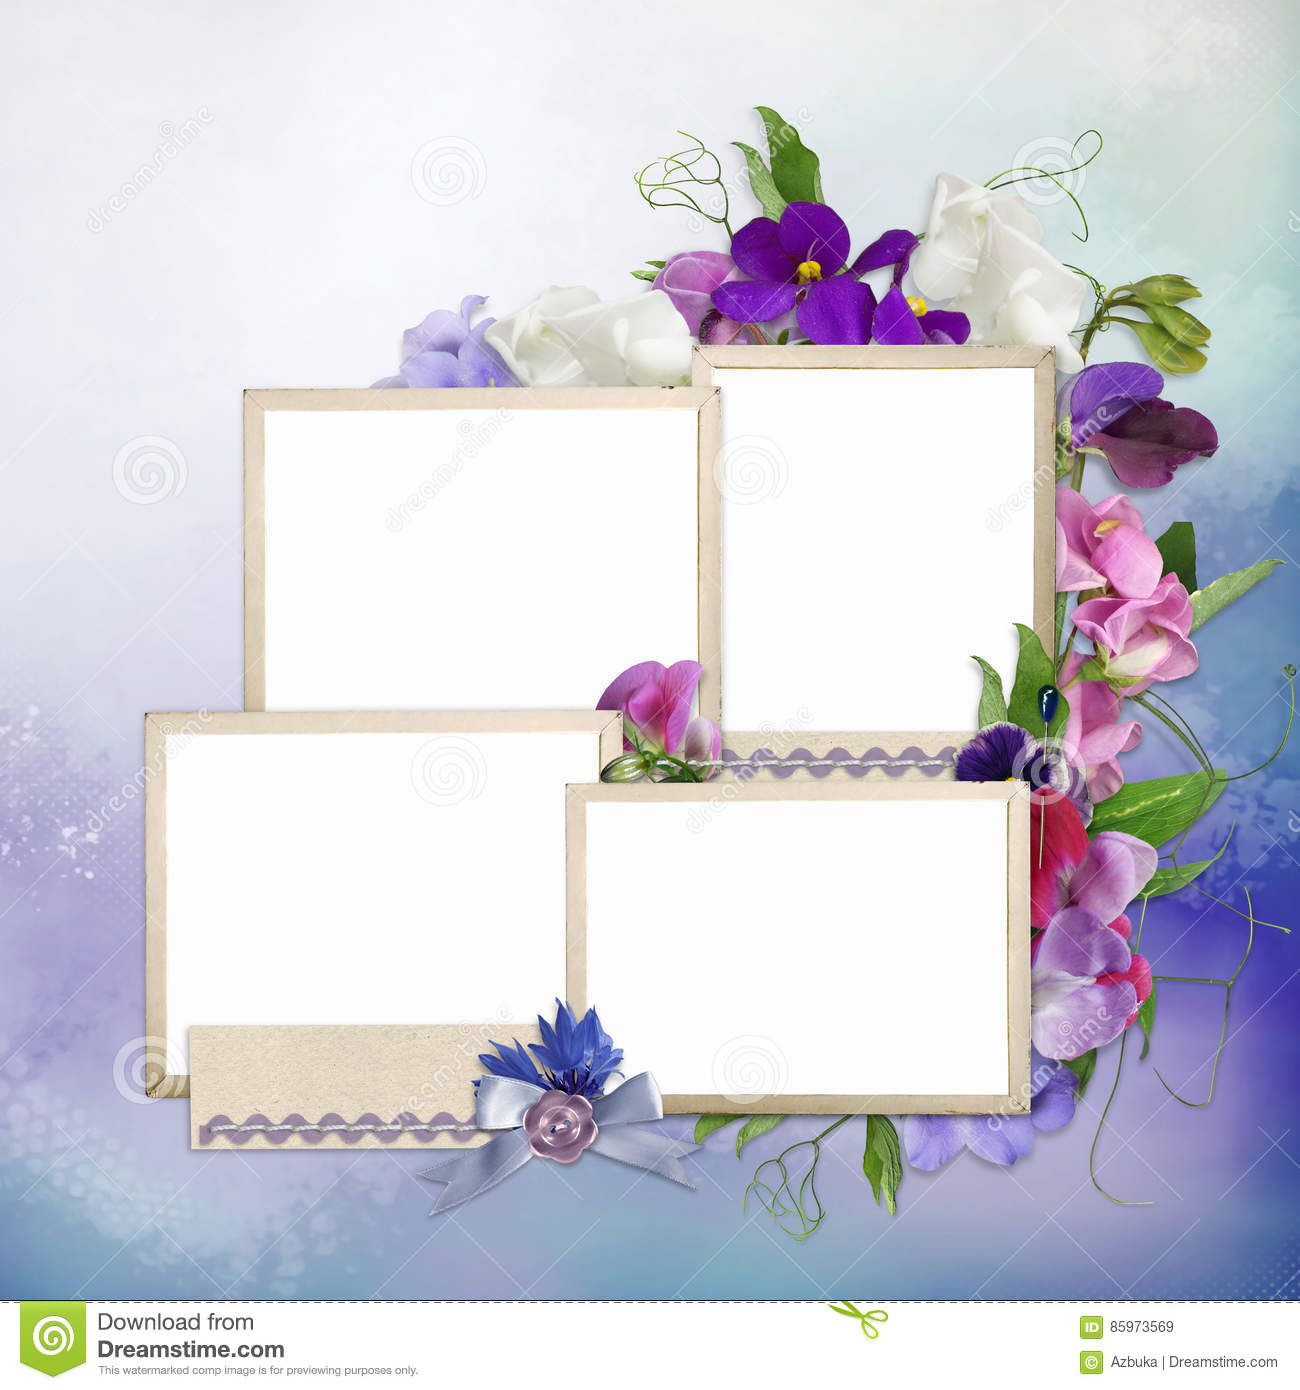 Frames For Family And Summer Flowers On Delicate Background Stock